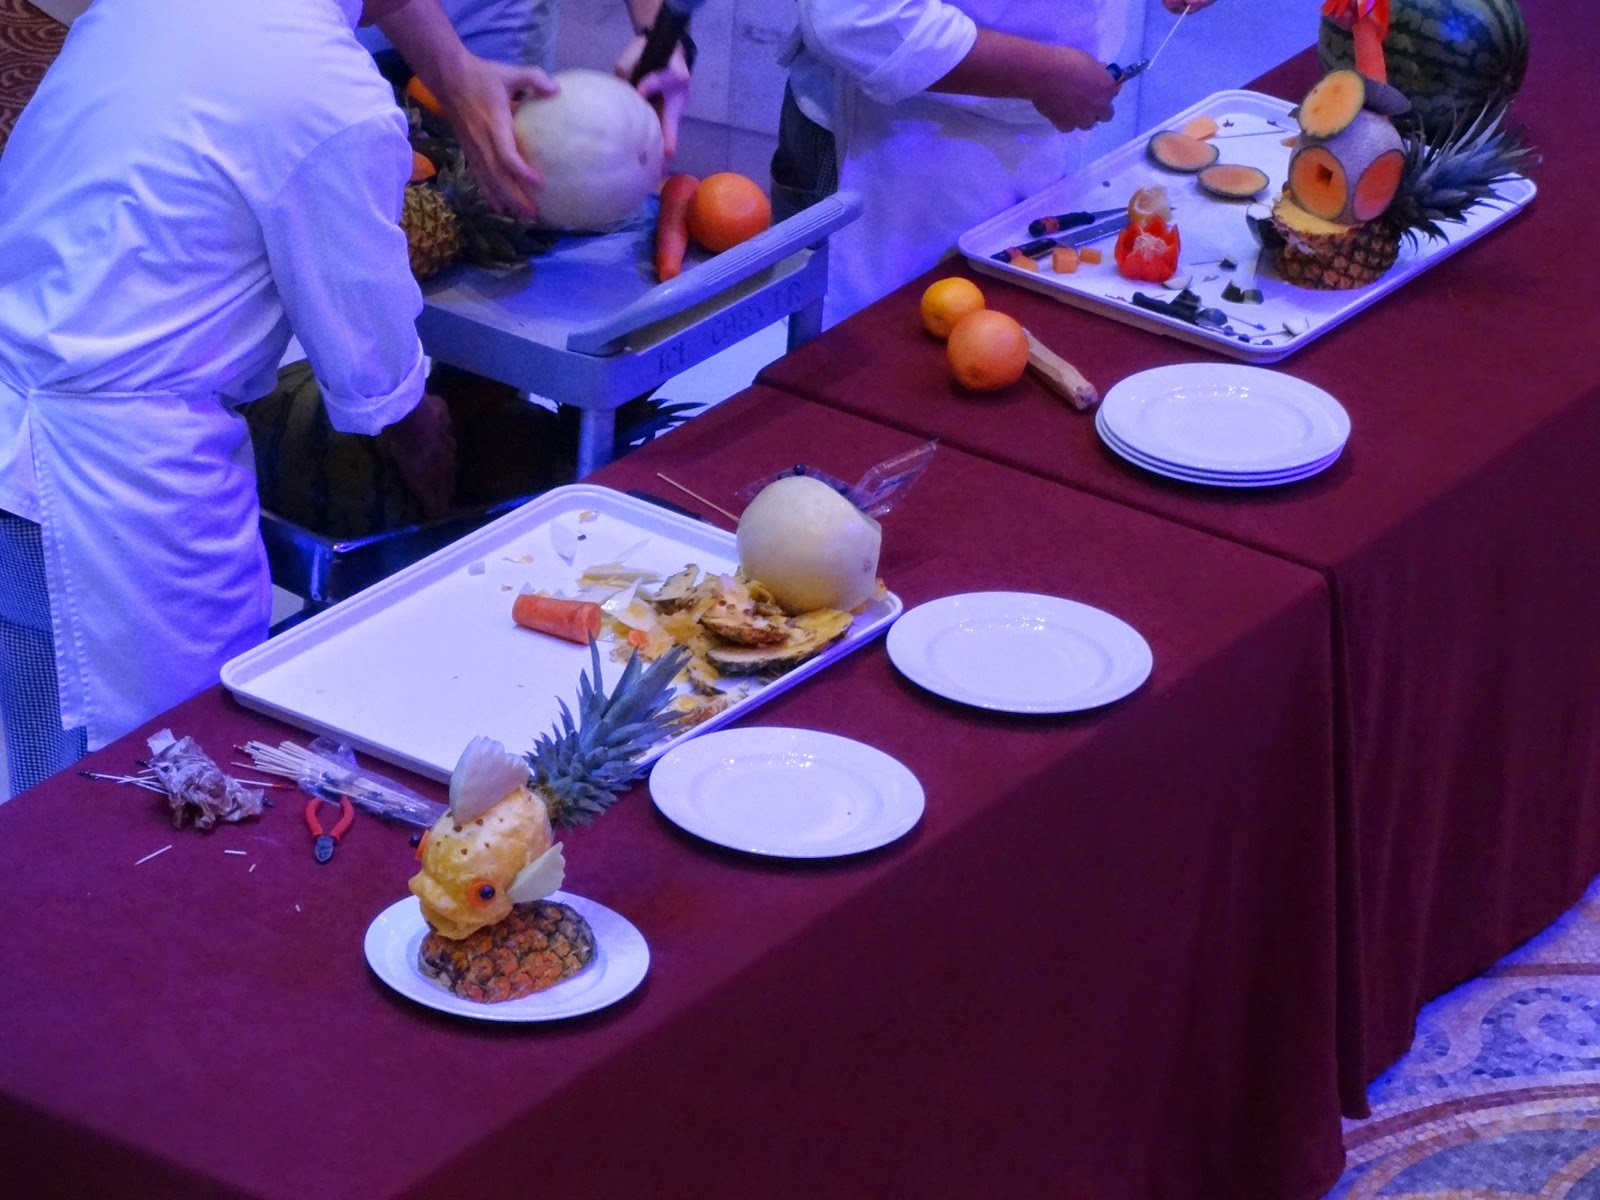 fruit carving demo